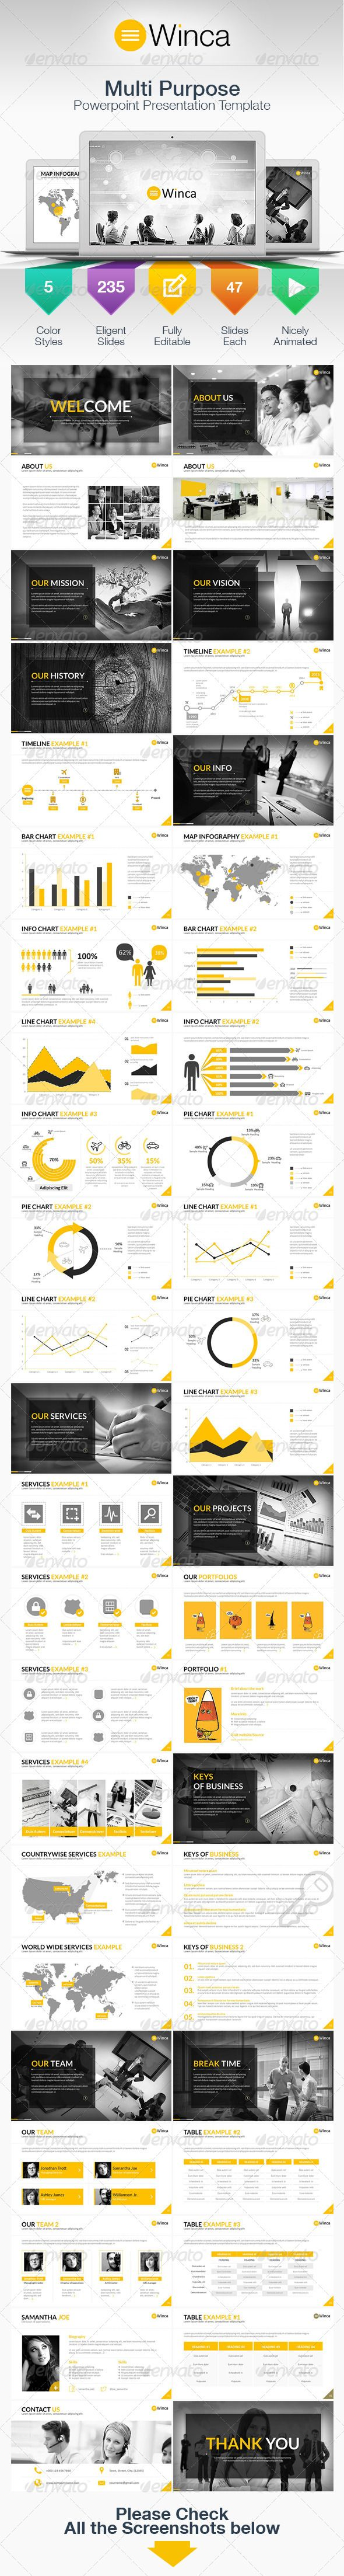 Winca Multipurpose Business Power Point Template - Presentation Templates